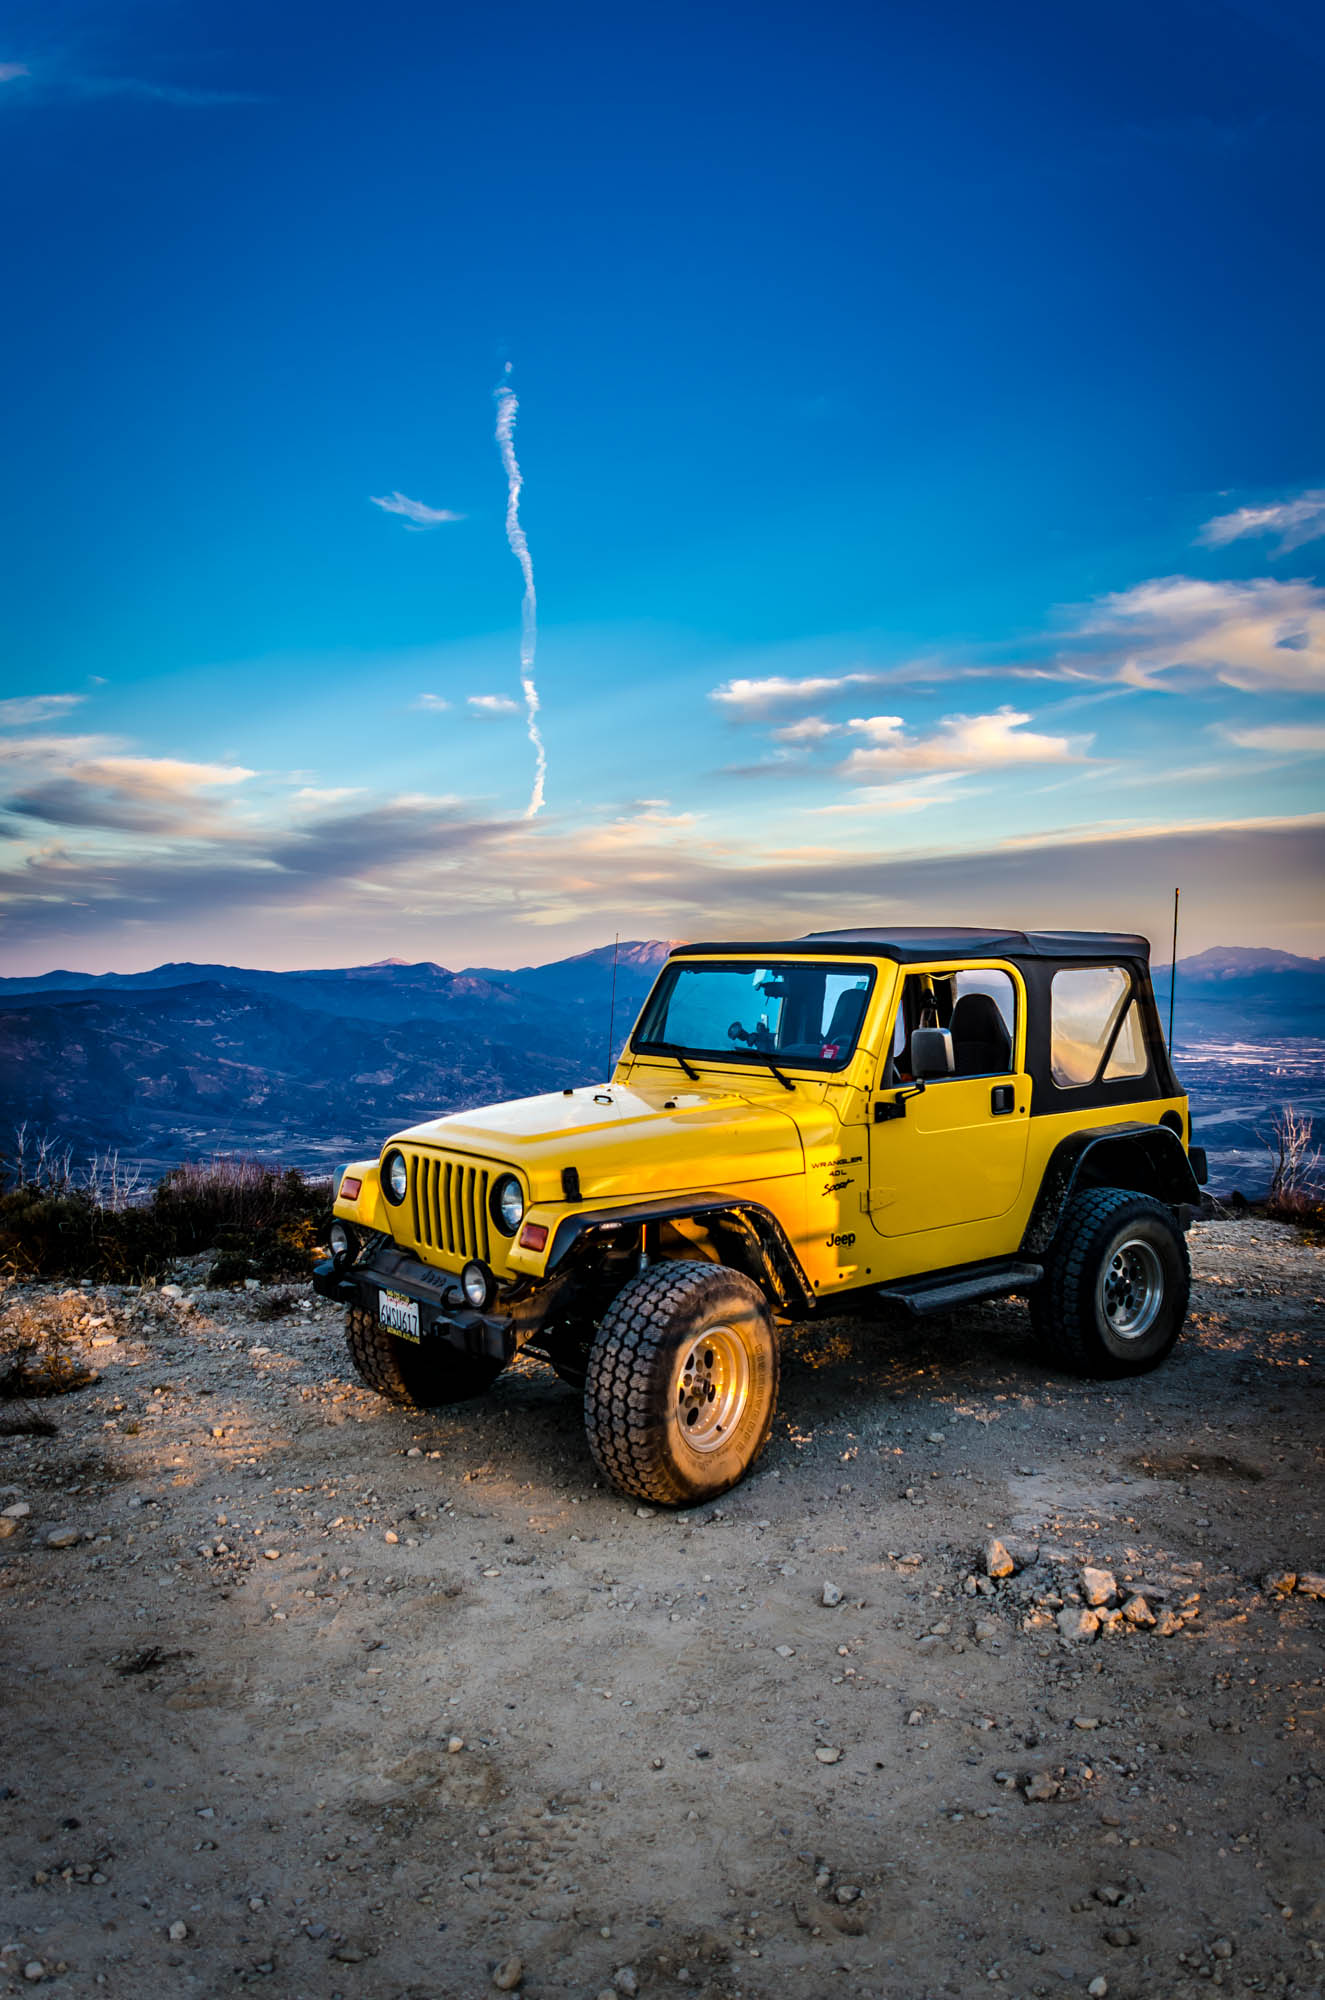 Jeep Rentals - Jeep Tours - Jeep Adventures